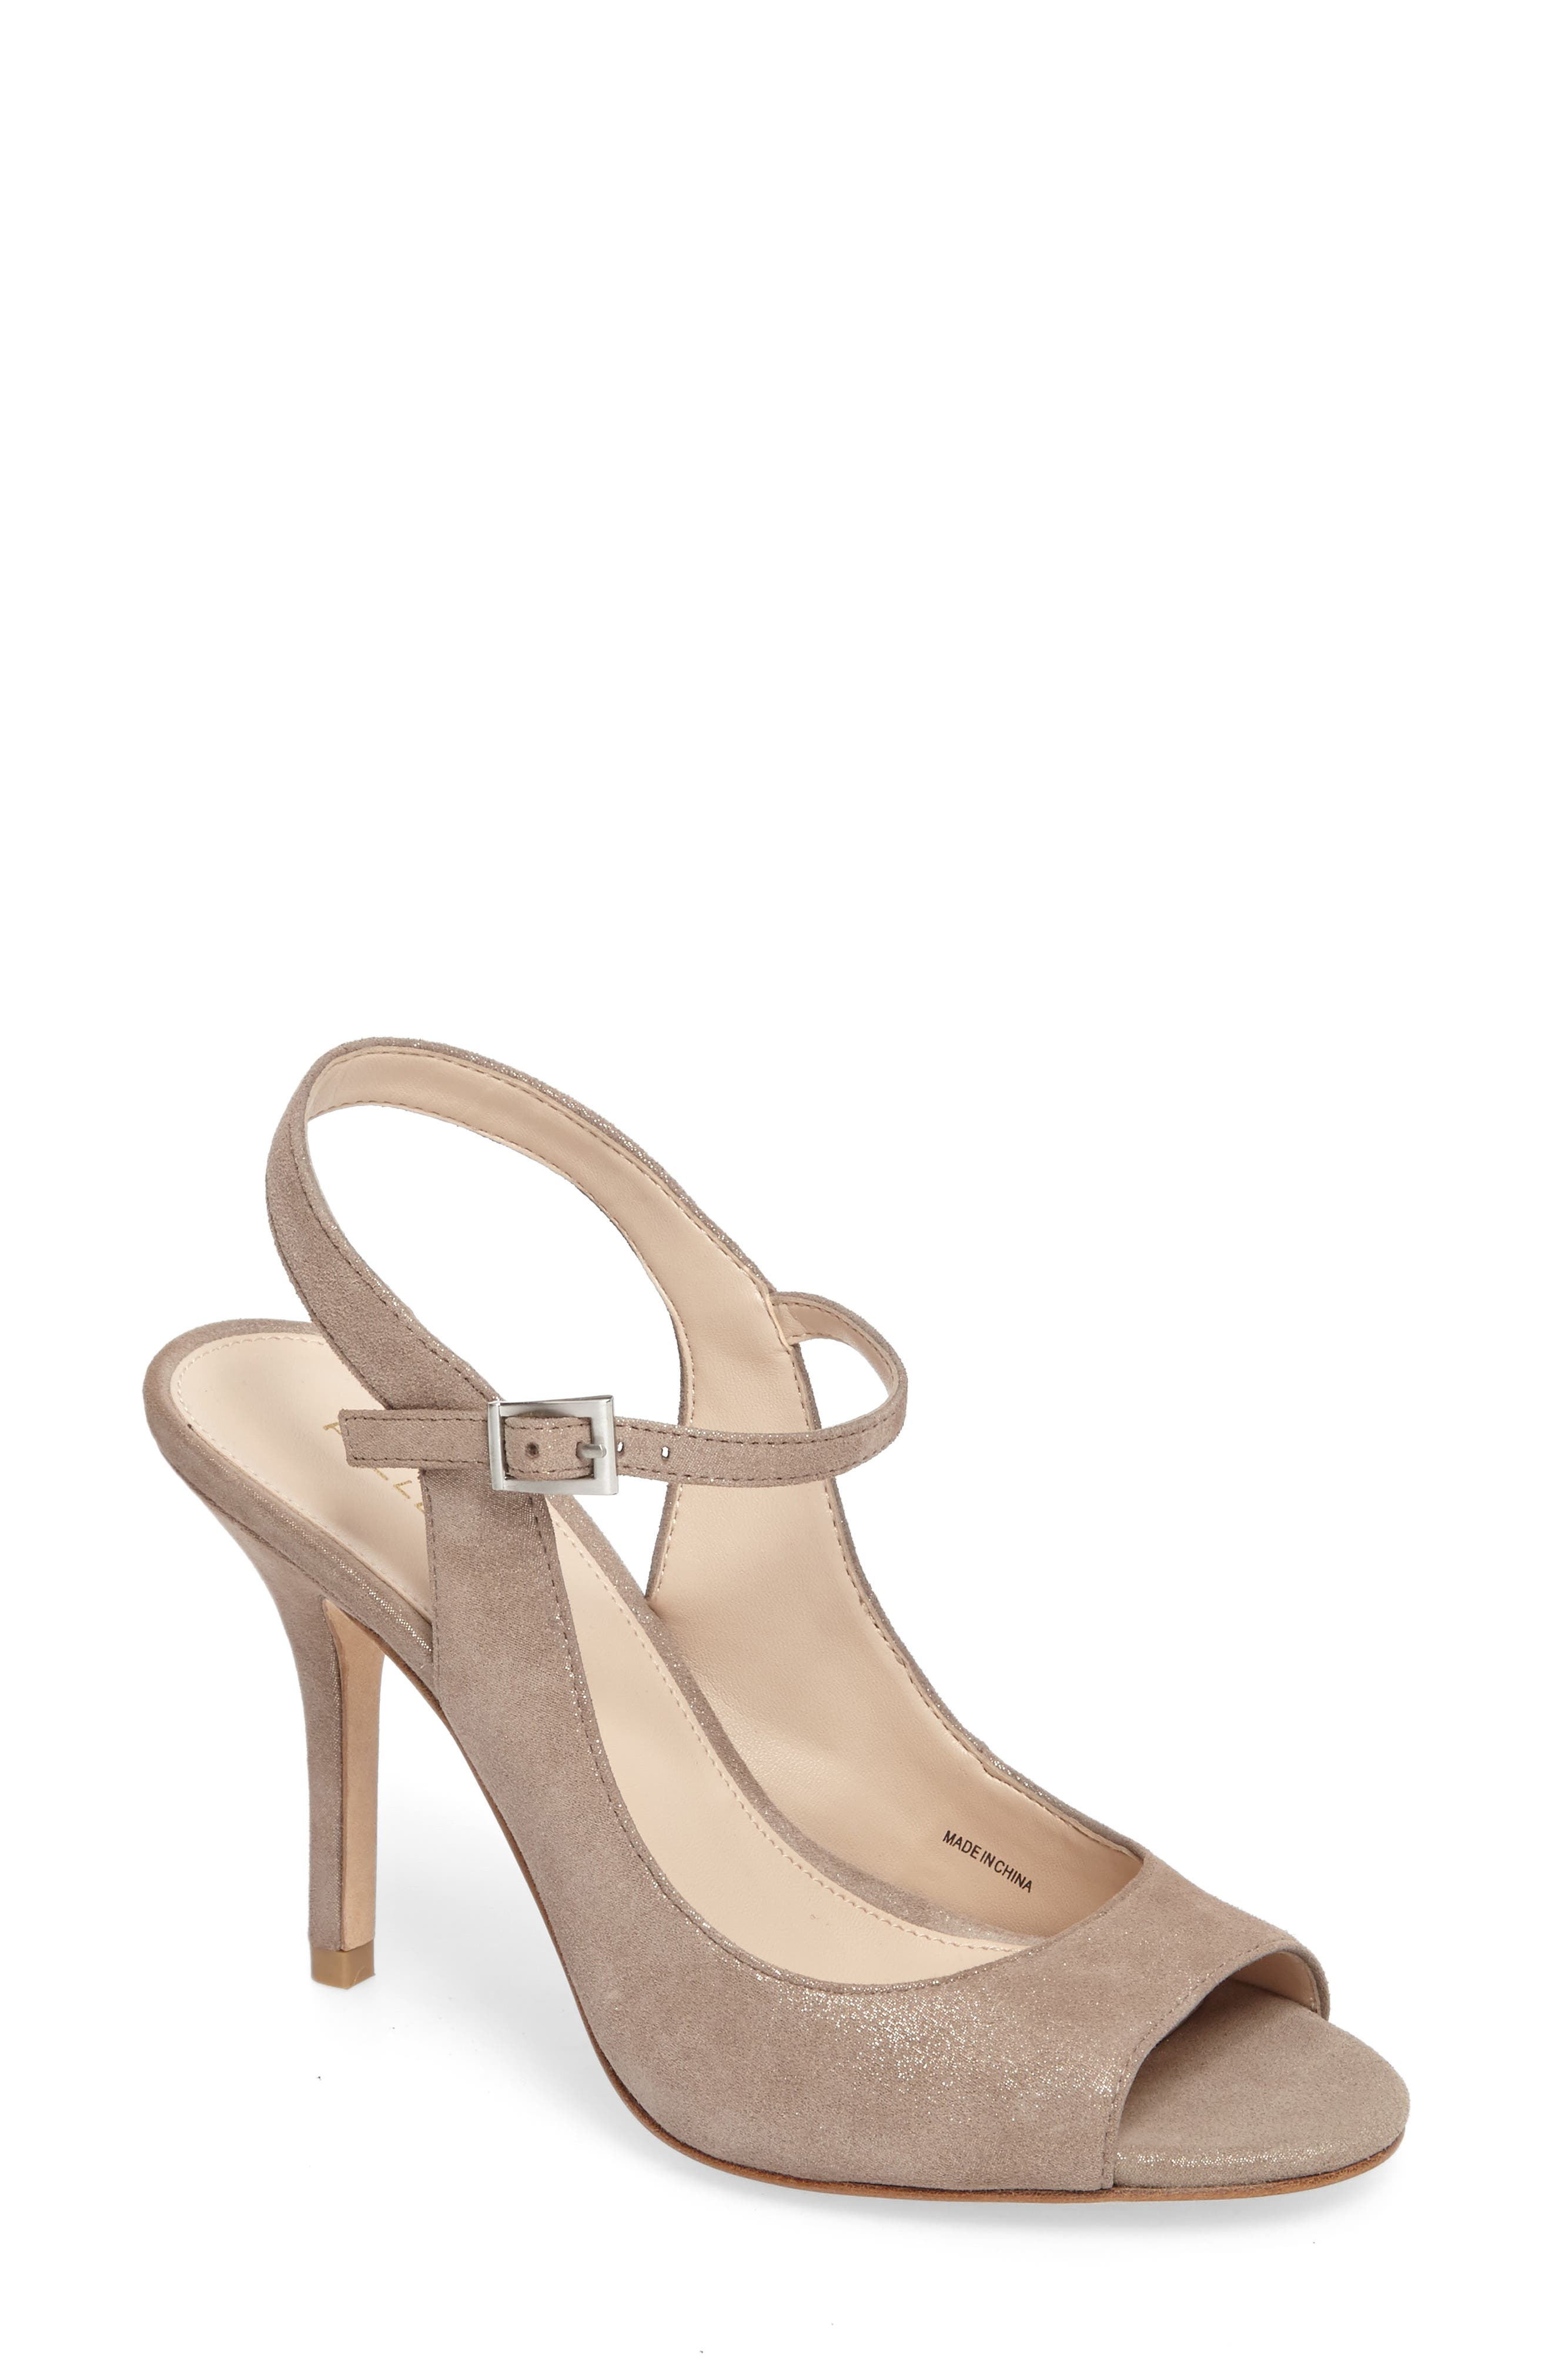 Kinsey Sandal,                         Main,                         color, Taupe Leather